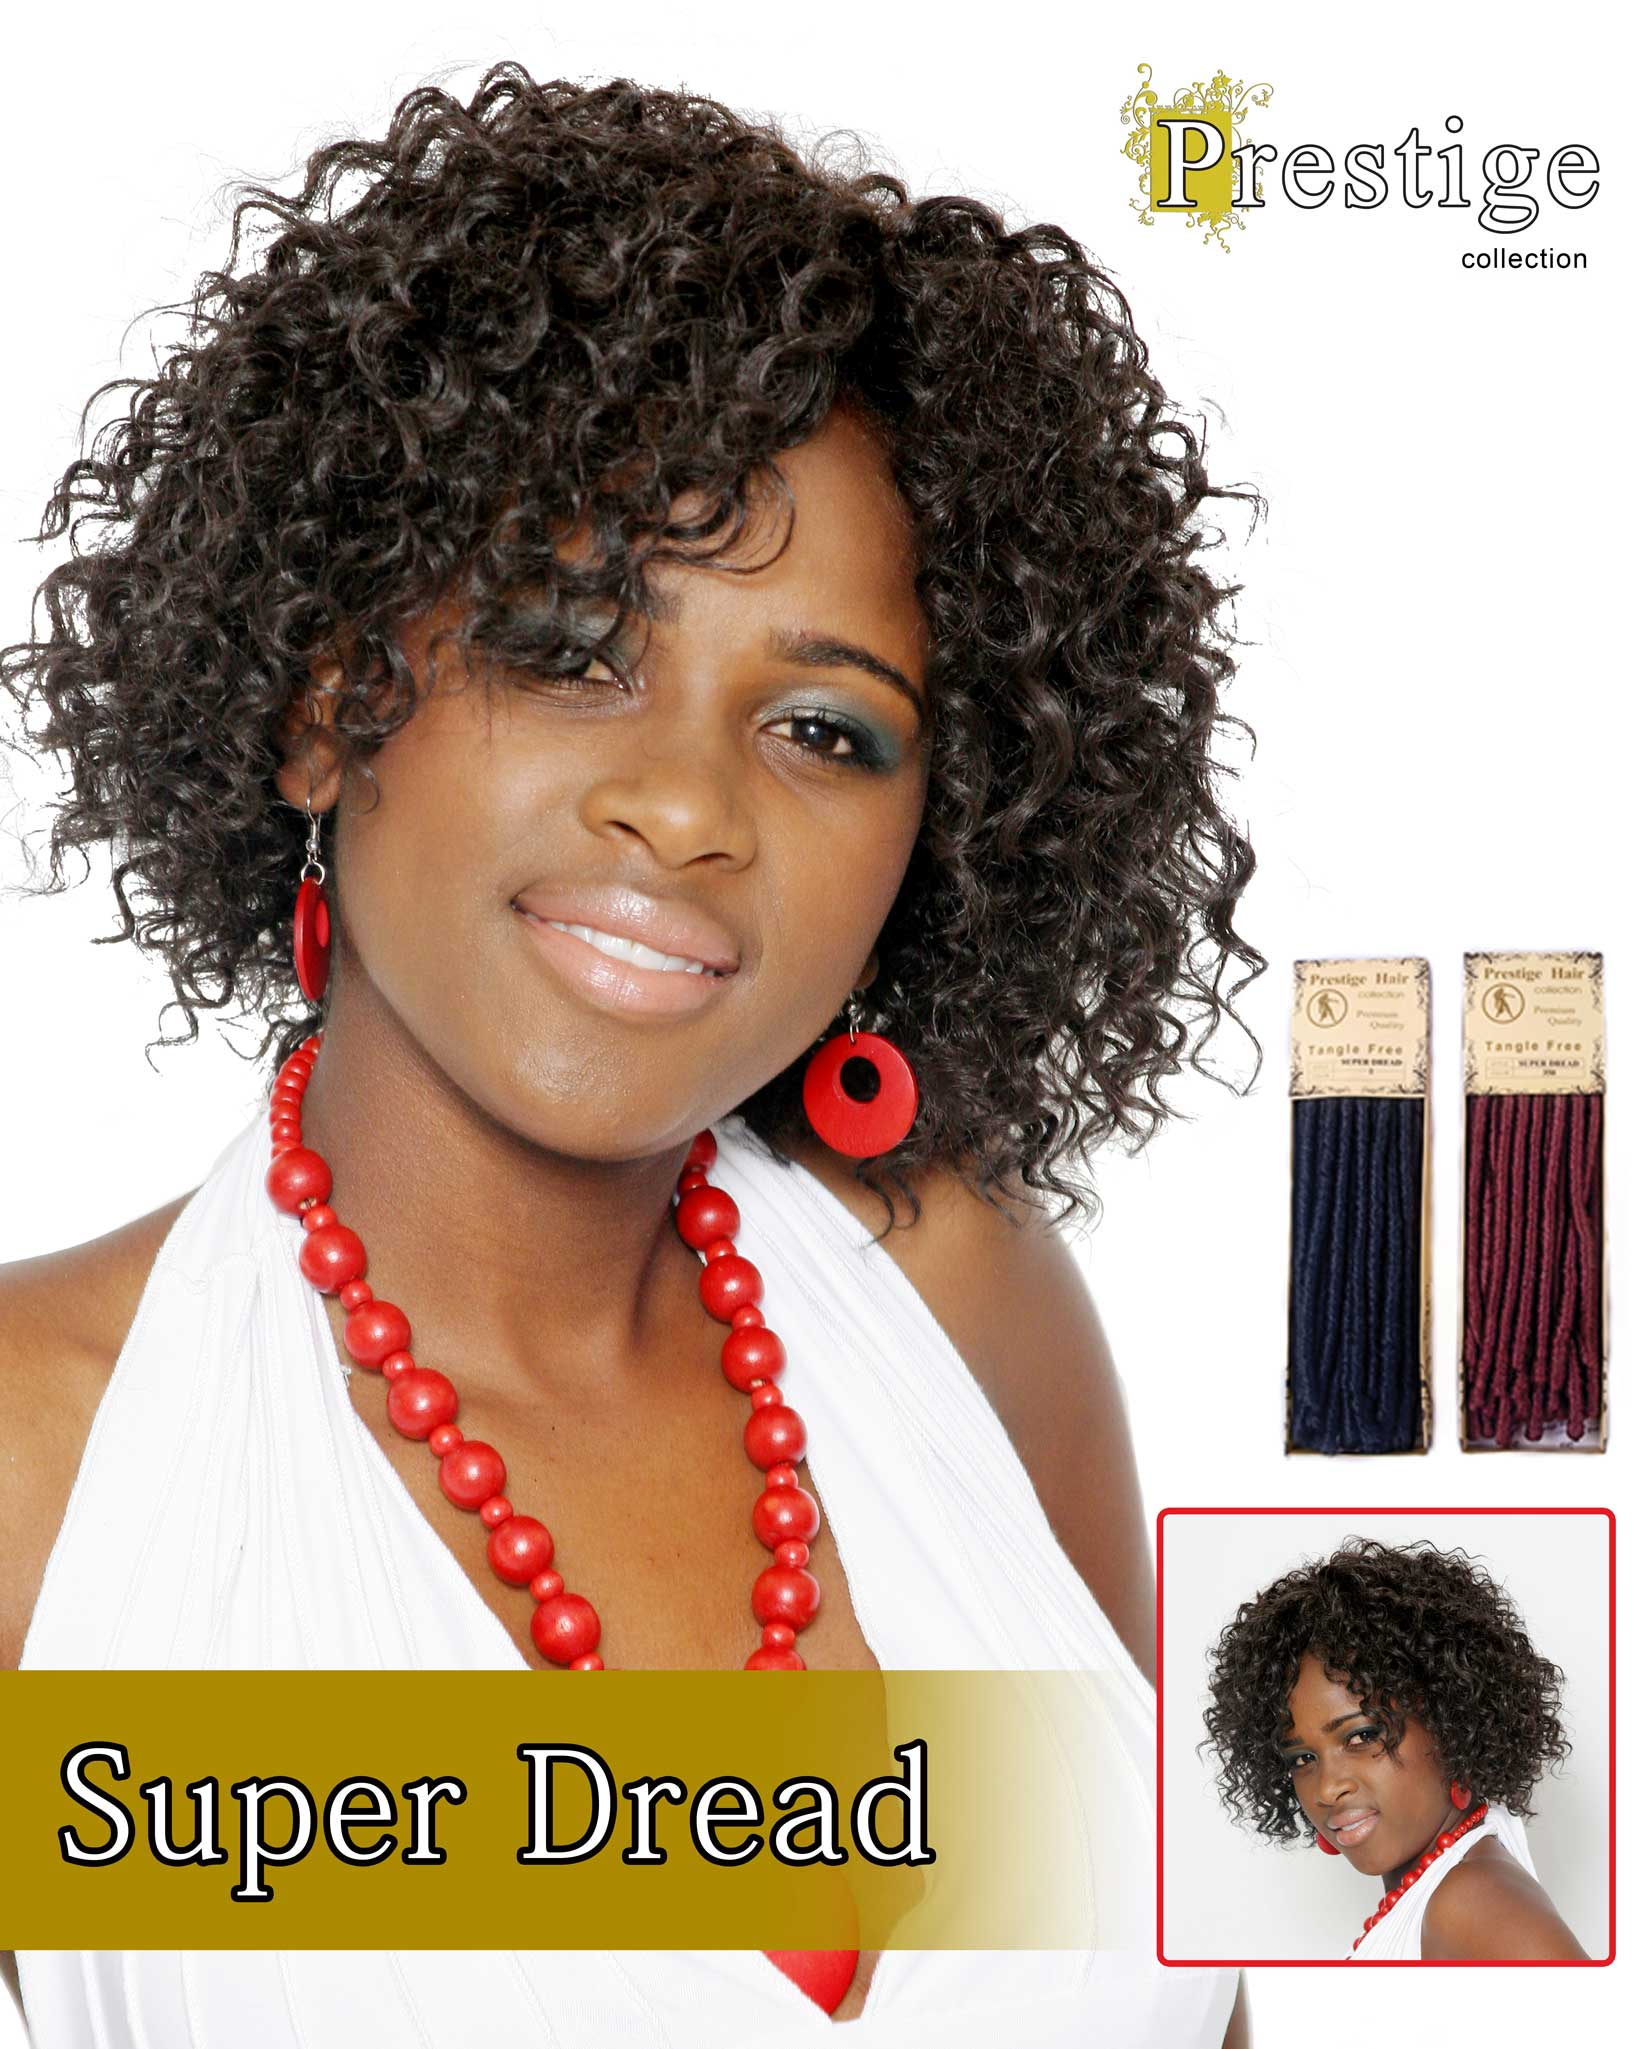 SUPER DREAD Image